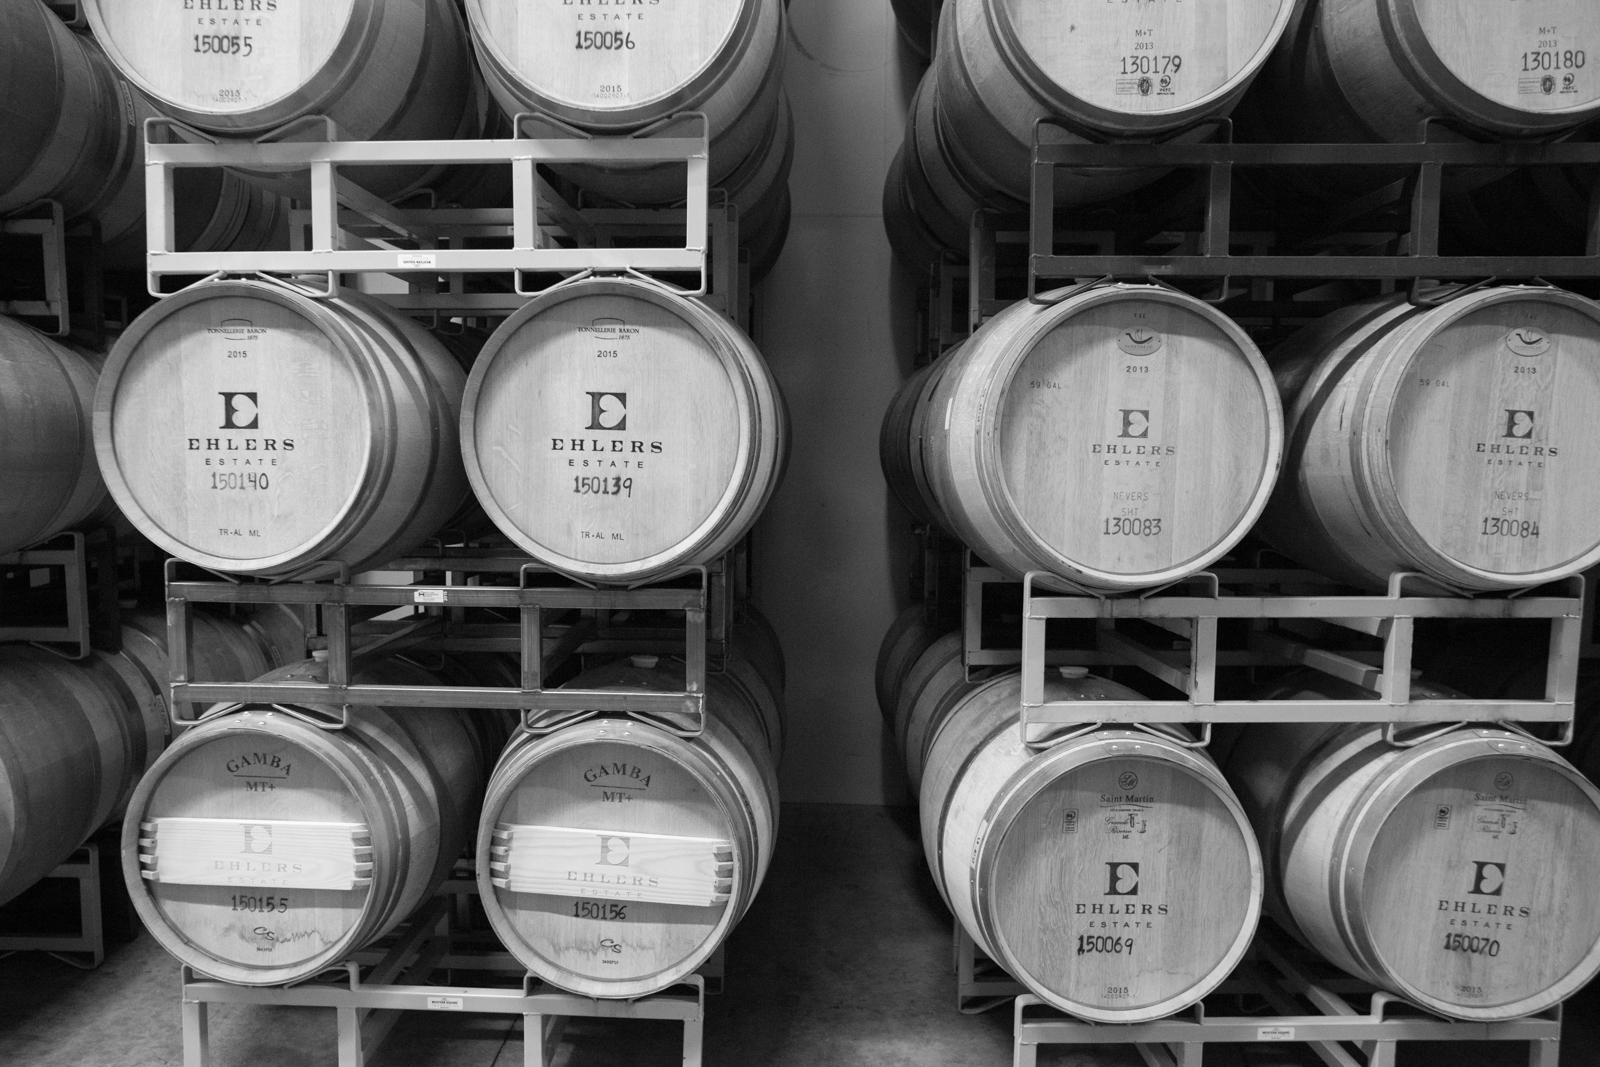 Barrels of wine at Ehlers Estate. ©Kevin Day/Opening a Bottle